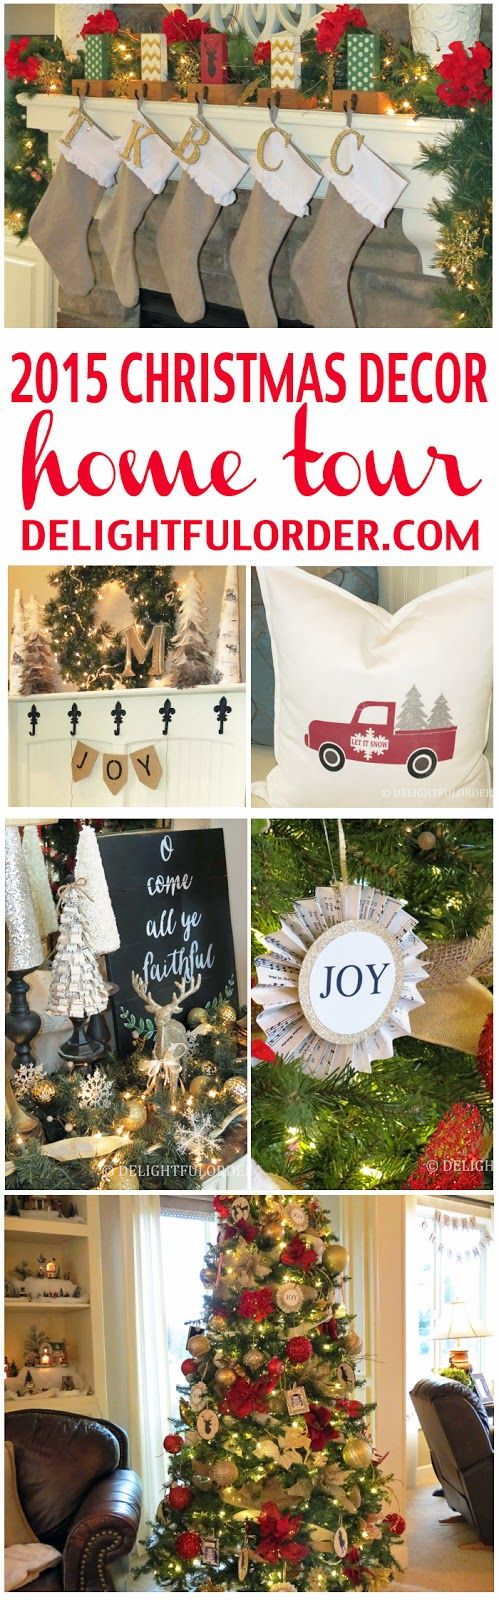 Delightful Order 2015 Christmas Decor Home Tour